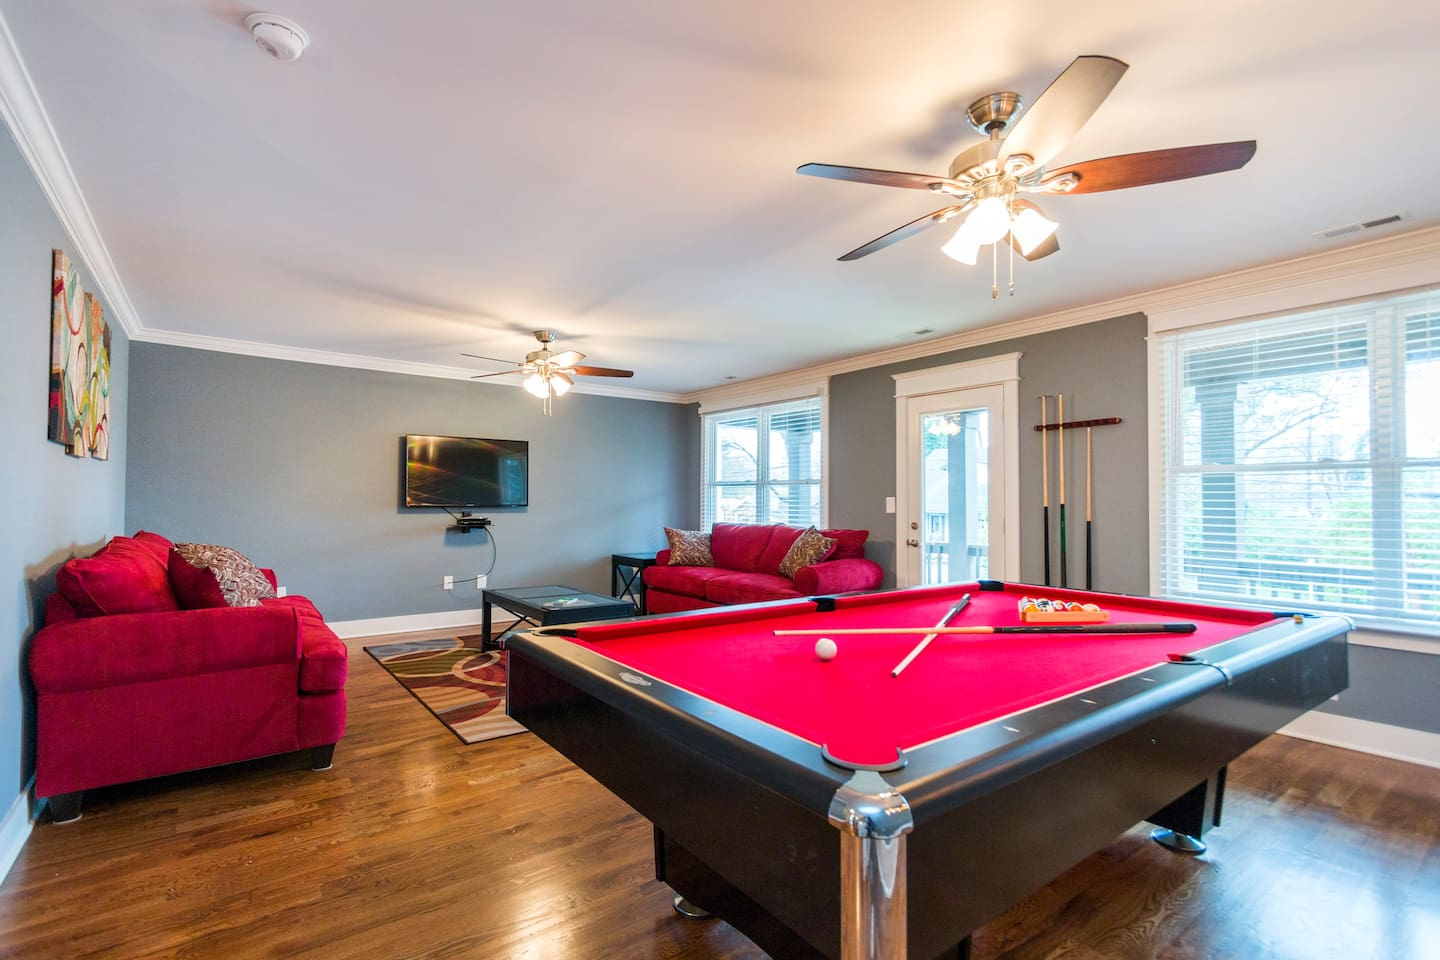 Huge House With Pool Table Bdba Sqft Houses For Rent In - Huge pool table